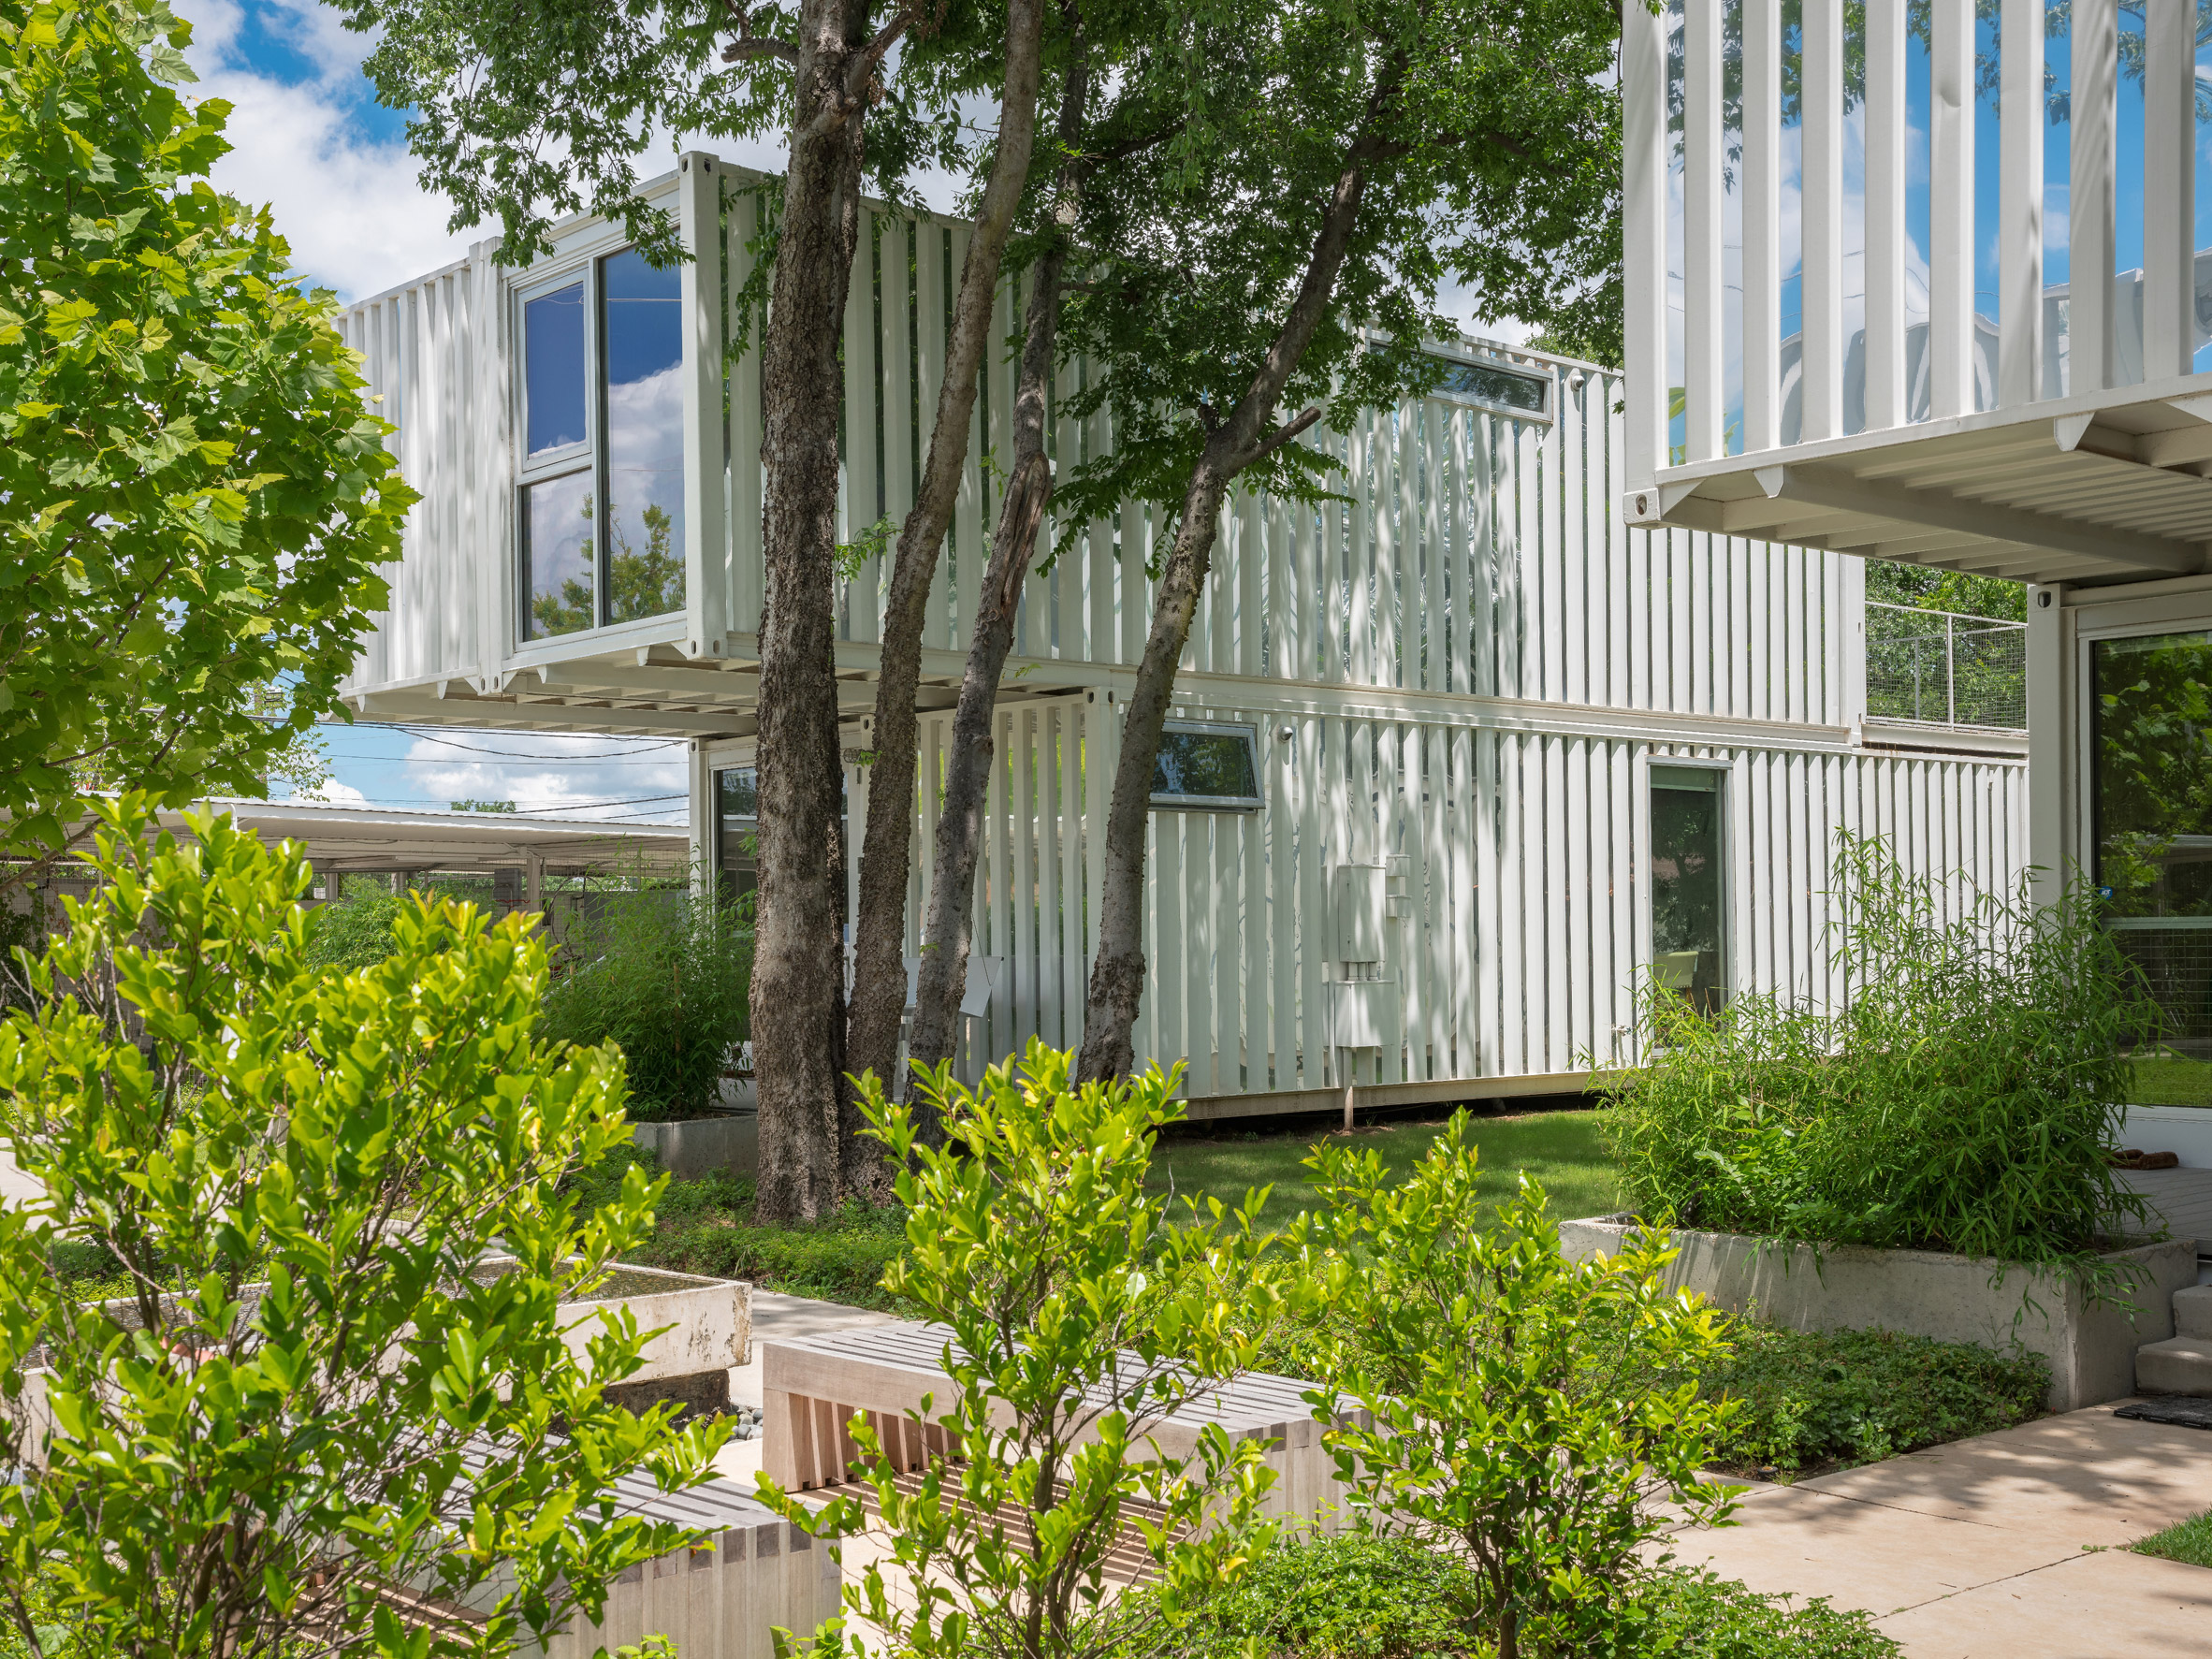 Homes built from white shipping containers surrounded by trees.